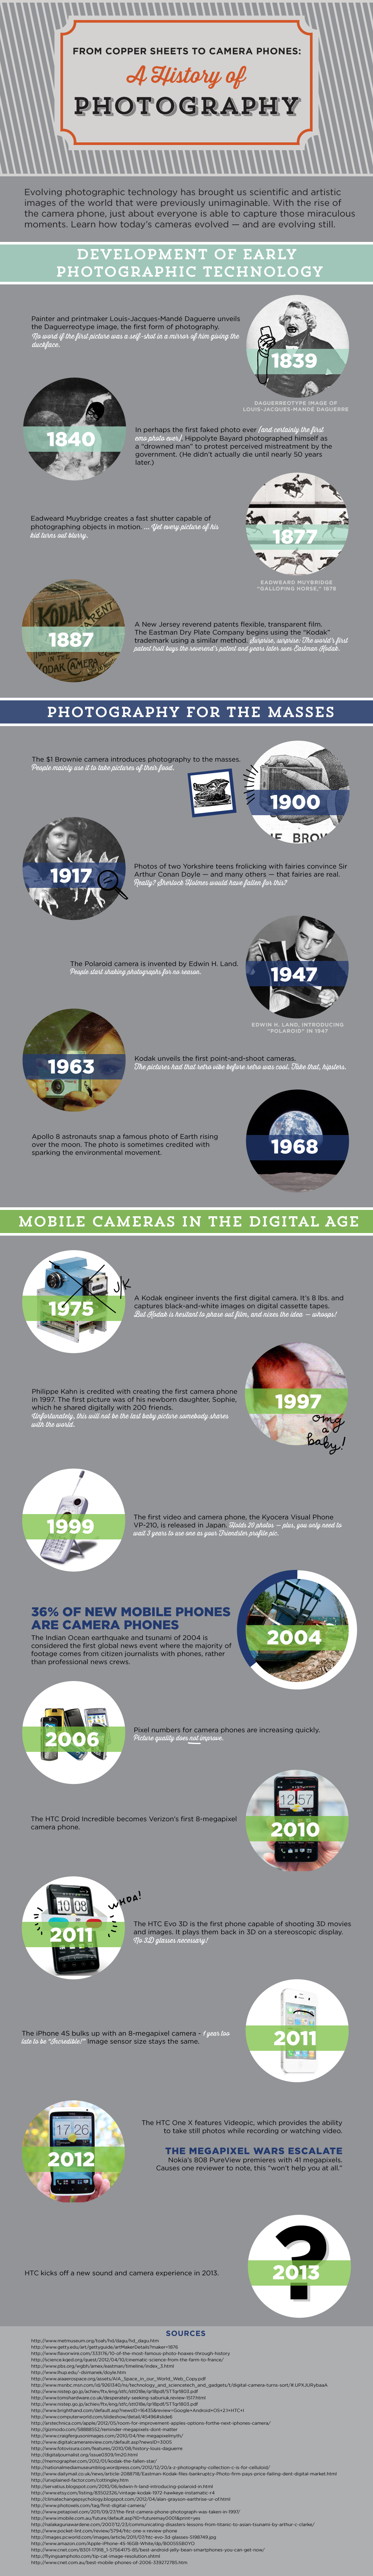 history of photography, htc infographic